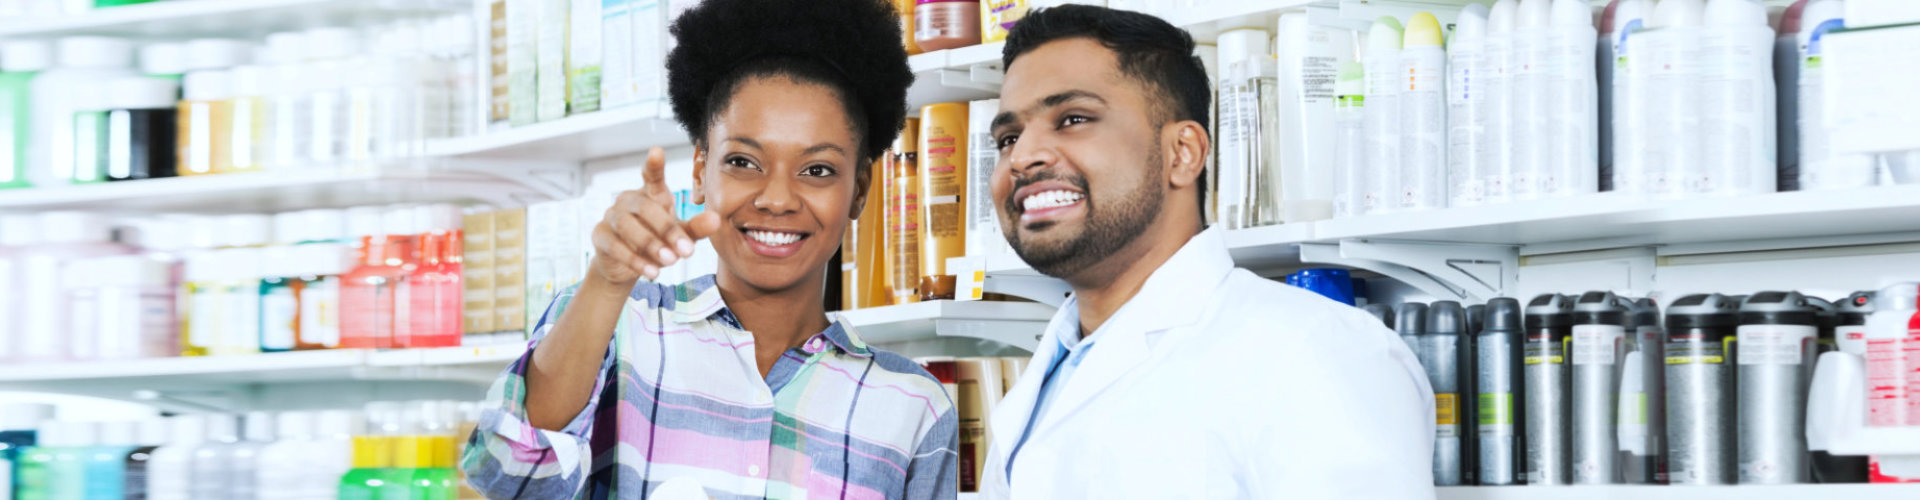 photo of a customer pointing at something while pharmacist looking at it smiling